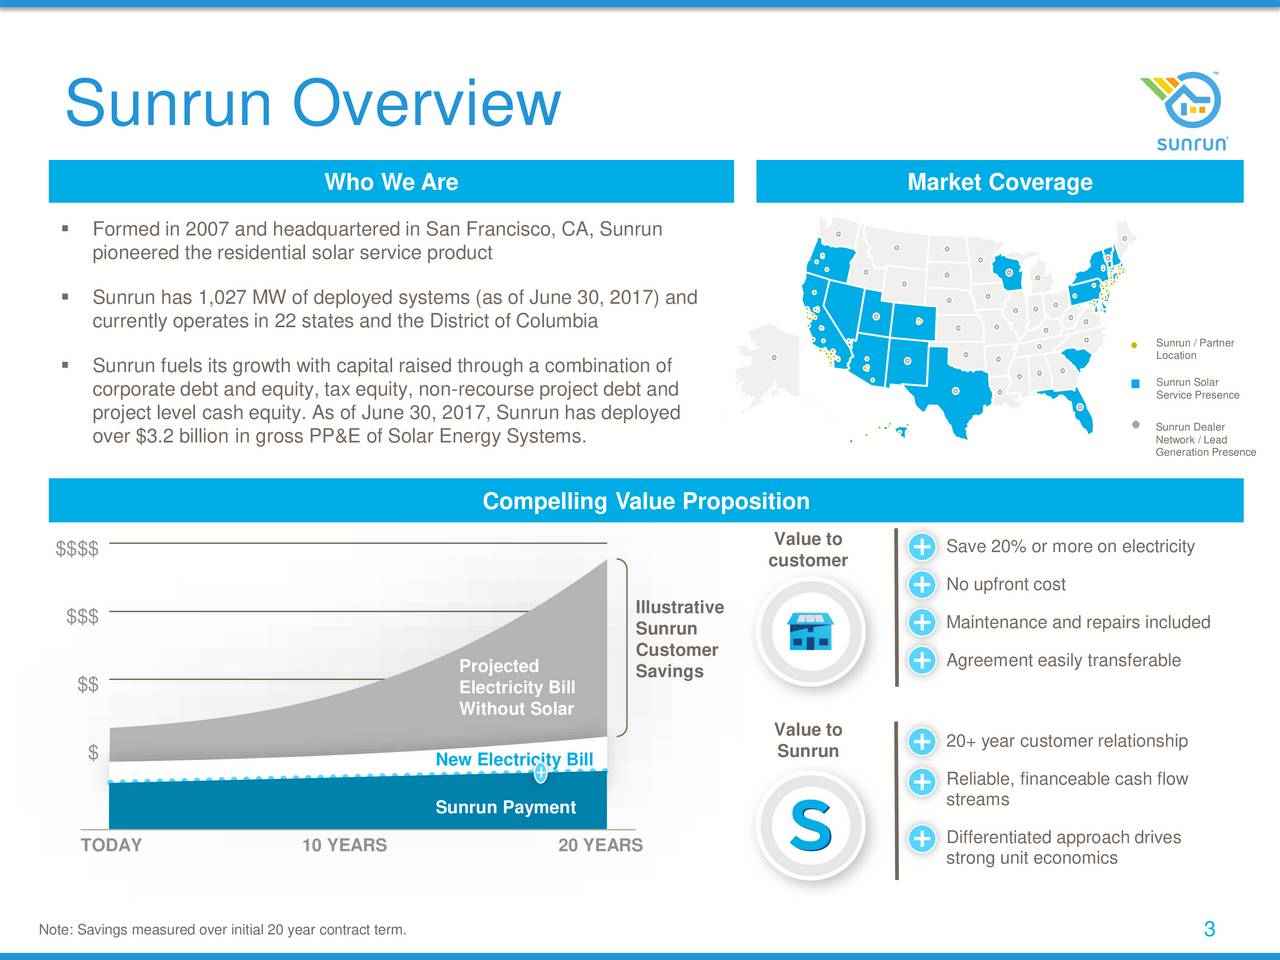 Who We Are Market Coverage Formed in 2007 and headquartered in San Francisco, CA, Sunrun pioneered the residential solar service product Sunrun has 1,027 MW of deployed systems (as of June 30, 2017) and currently operates in 22 states and the District of Columbia Sunrun / Partner Location Sunrun fuels its growth with capital raised through a combination of corporate debt and equity, tax equity, non-recourse project debt and Service Presence project level cash equity. As of June 30, 2017, Sunrun has deployed Sunrun Dealer over $3.2 billion in gross PP&E of Solar Energy Systems. Network / Lead Generation Presence Compelling Value Proposition $$$$ Value to Save 20% or more on electricity customer No upfront cost Illustrative $$$ Maintenance and repairs included Sunrun Customer Agreement easily transferable Projected Savings $$ Electricity Bill Without Solar Value to 20+ year customer relationship $ New Electricity Bill Sunrun Reliable, financeable cash flow streams Sunrun Payment Differentiated approach drives TODAY 10 YEARS 20 YEARS strong unit economics Note: Savings measured over initial 20 year contract term. 3